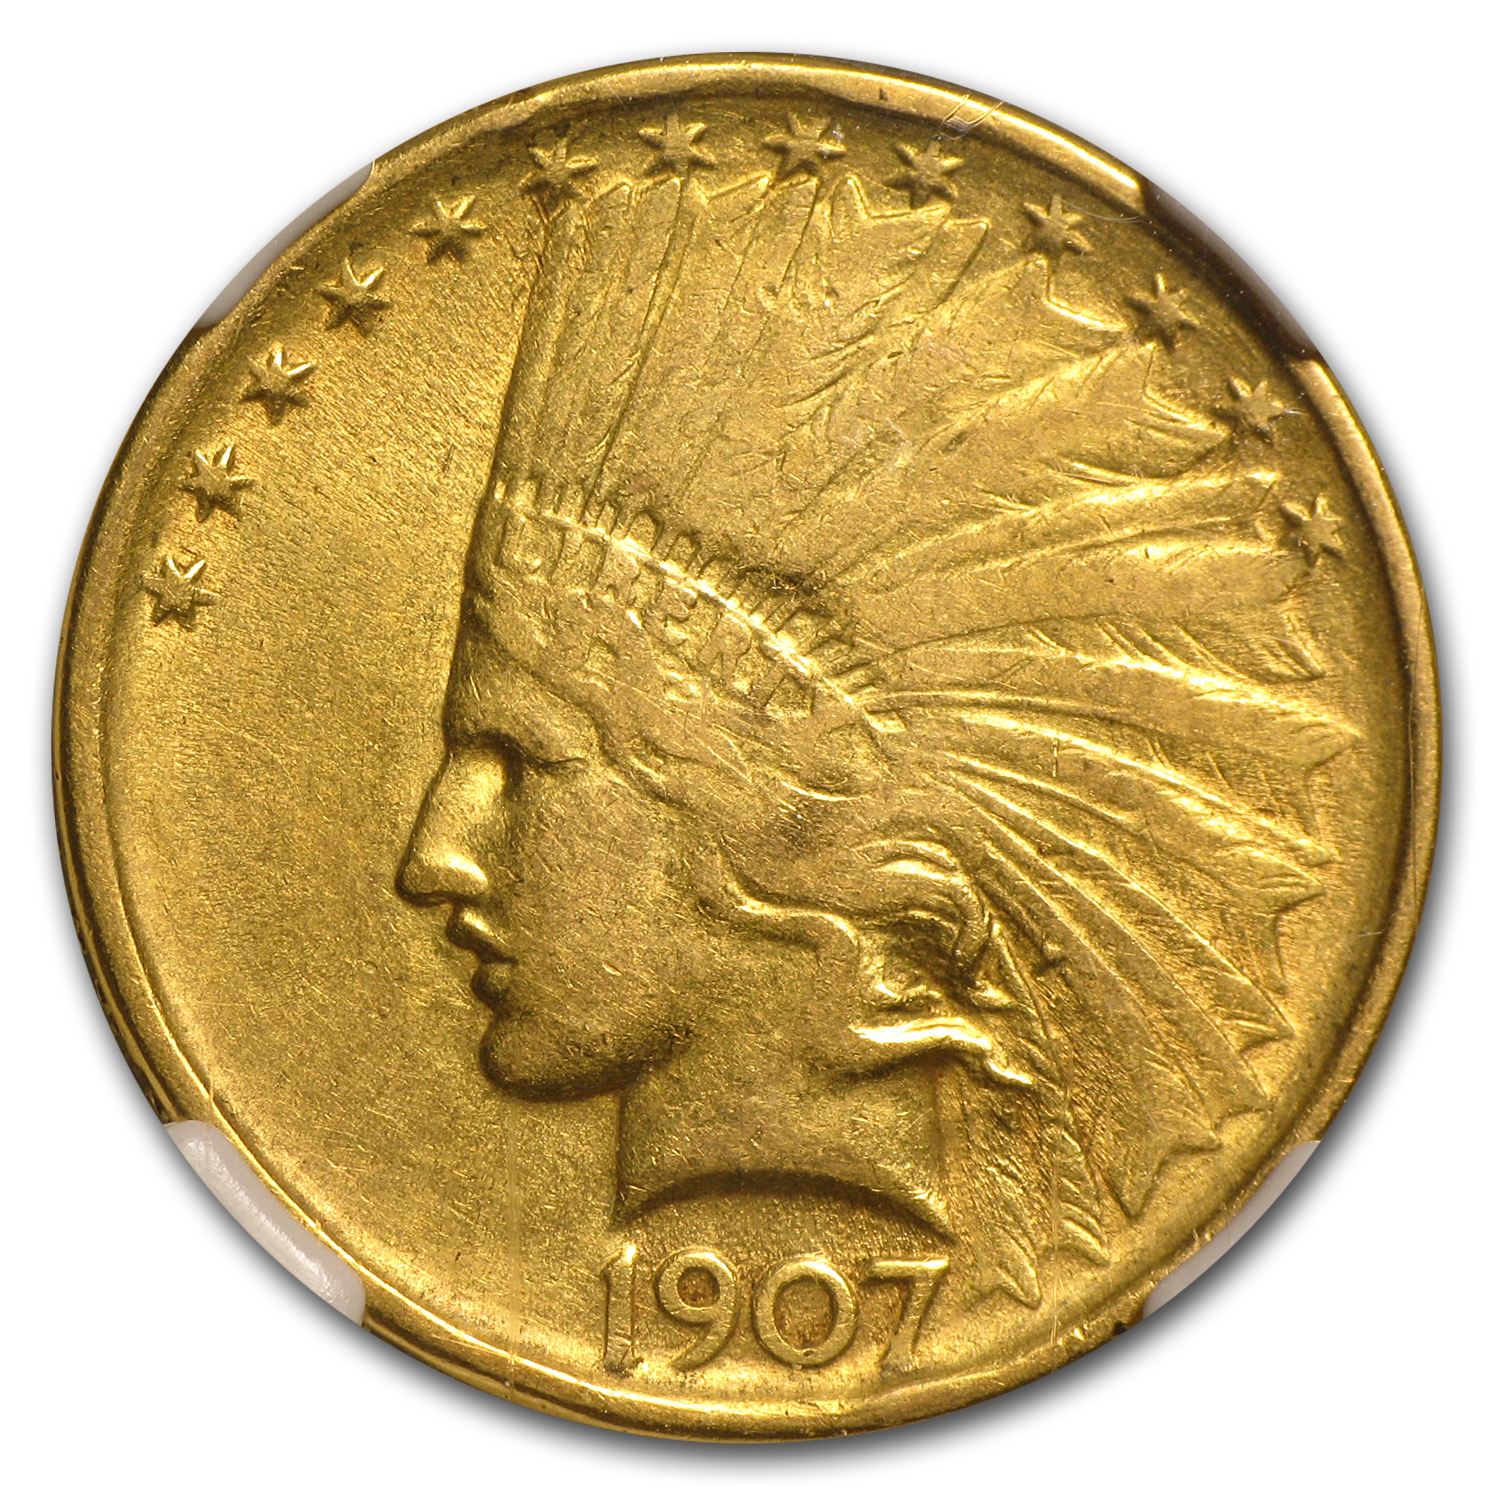 1907 $10 Indian Gold Eagle No Motto VF-30 NGC